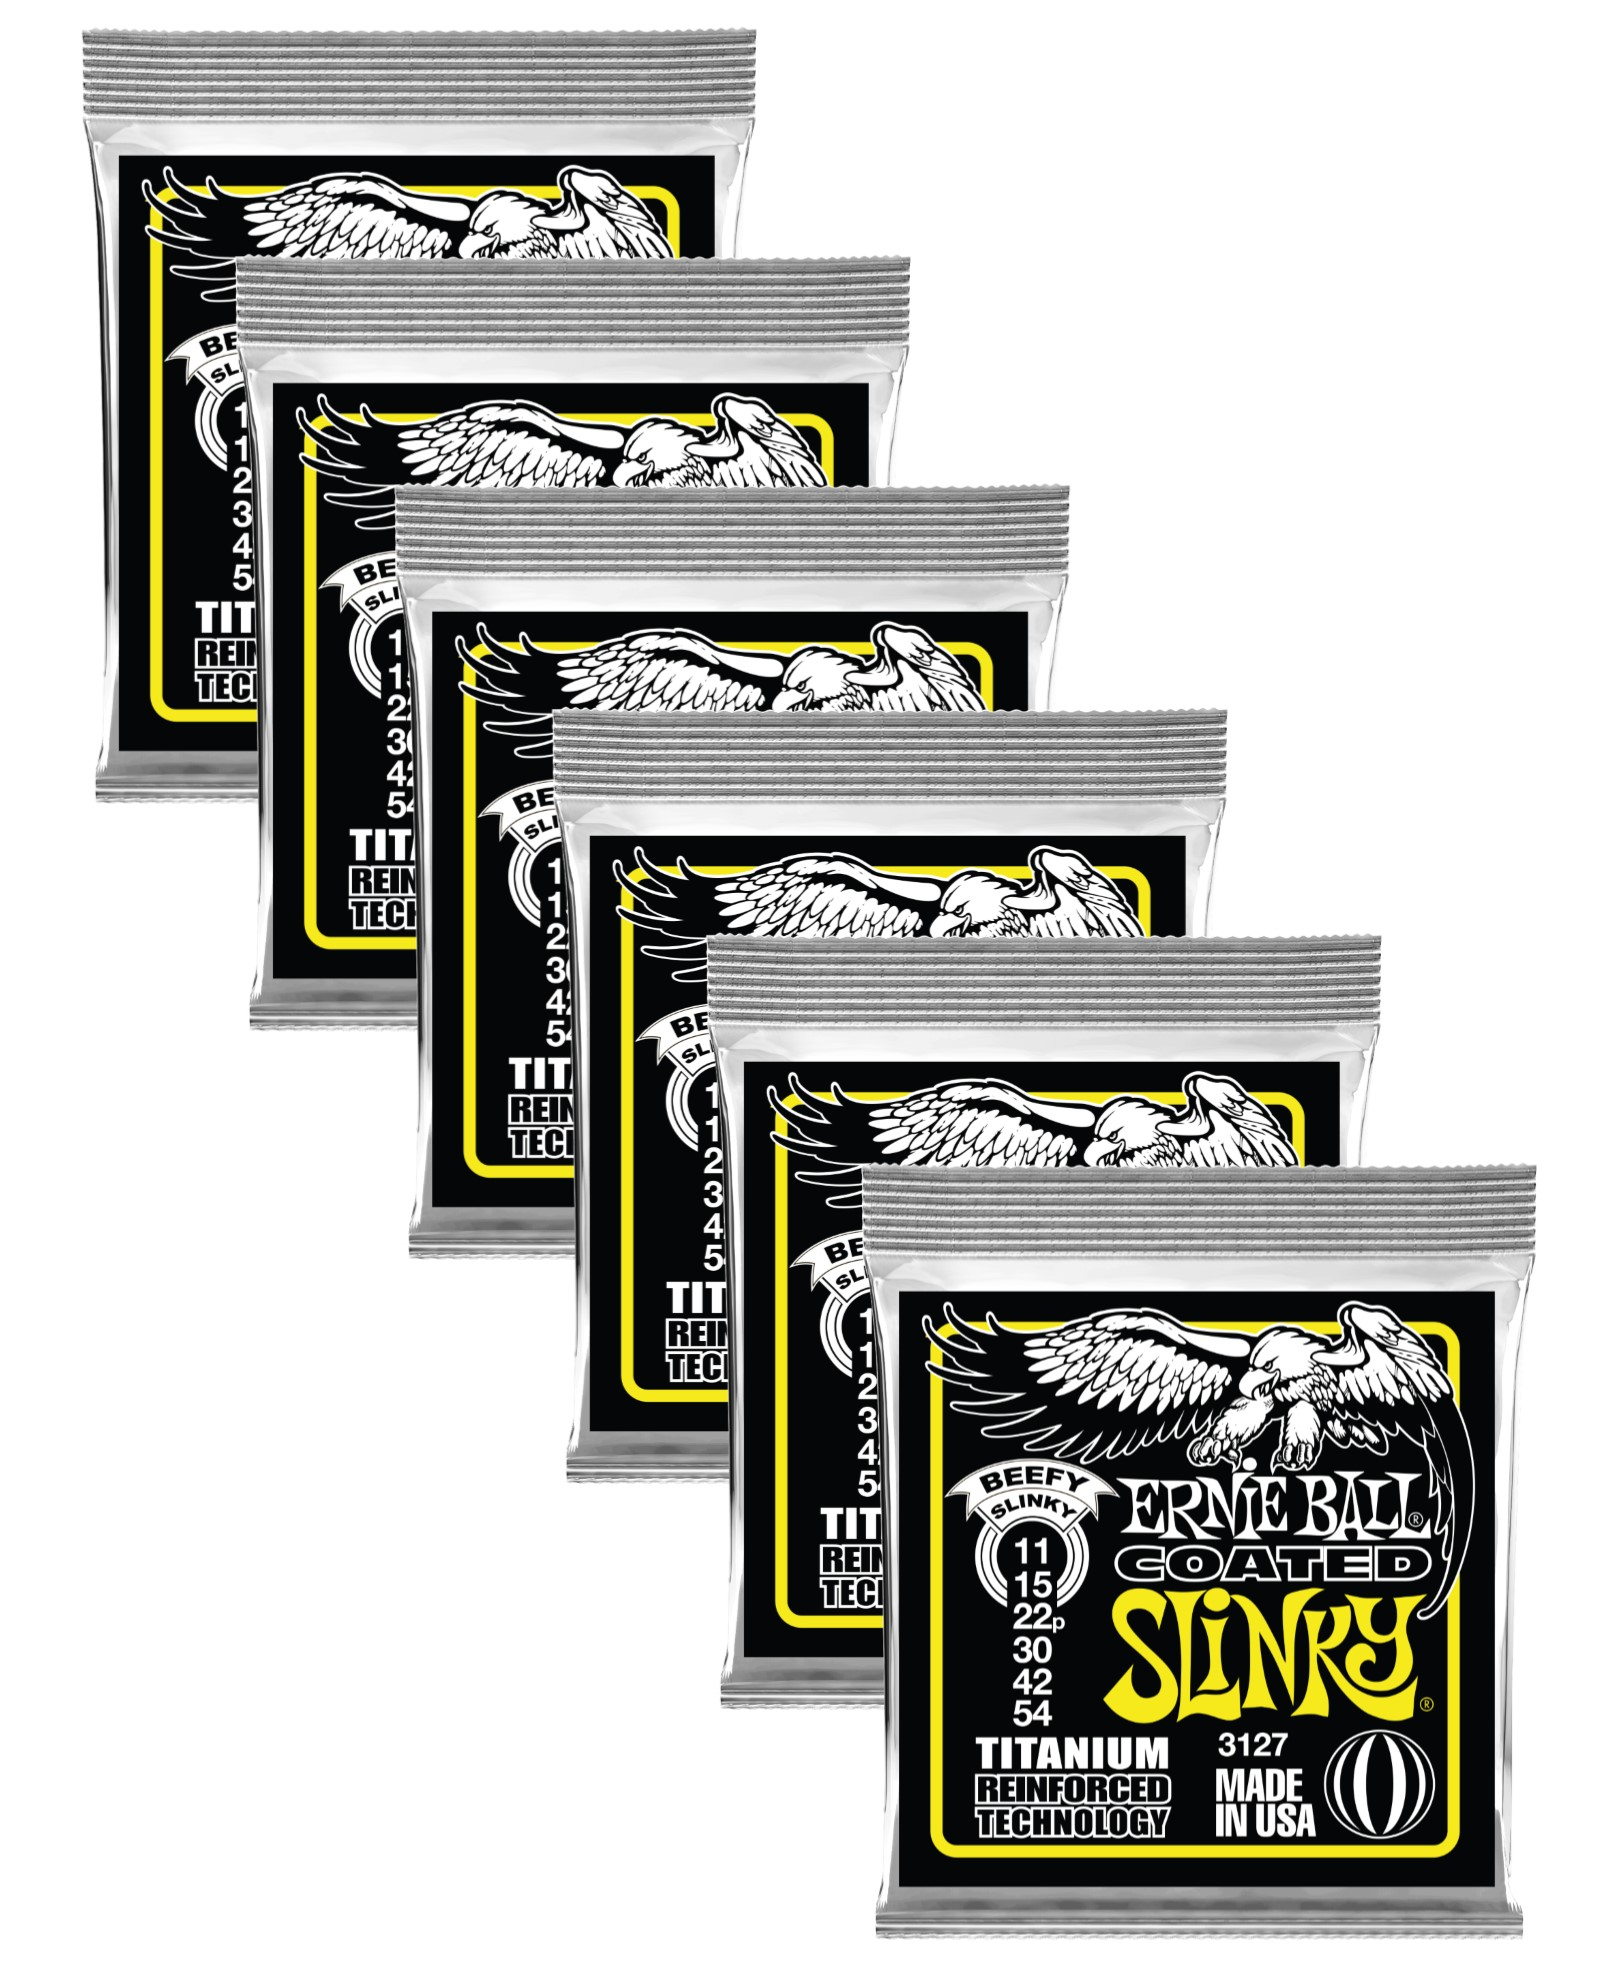 11-54 Ernie Ball Paradigm Coated Beefy Slinky Electric Guitar Strings